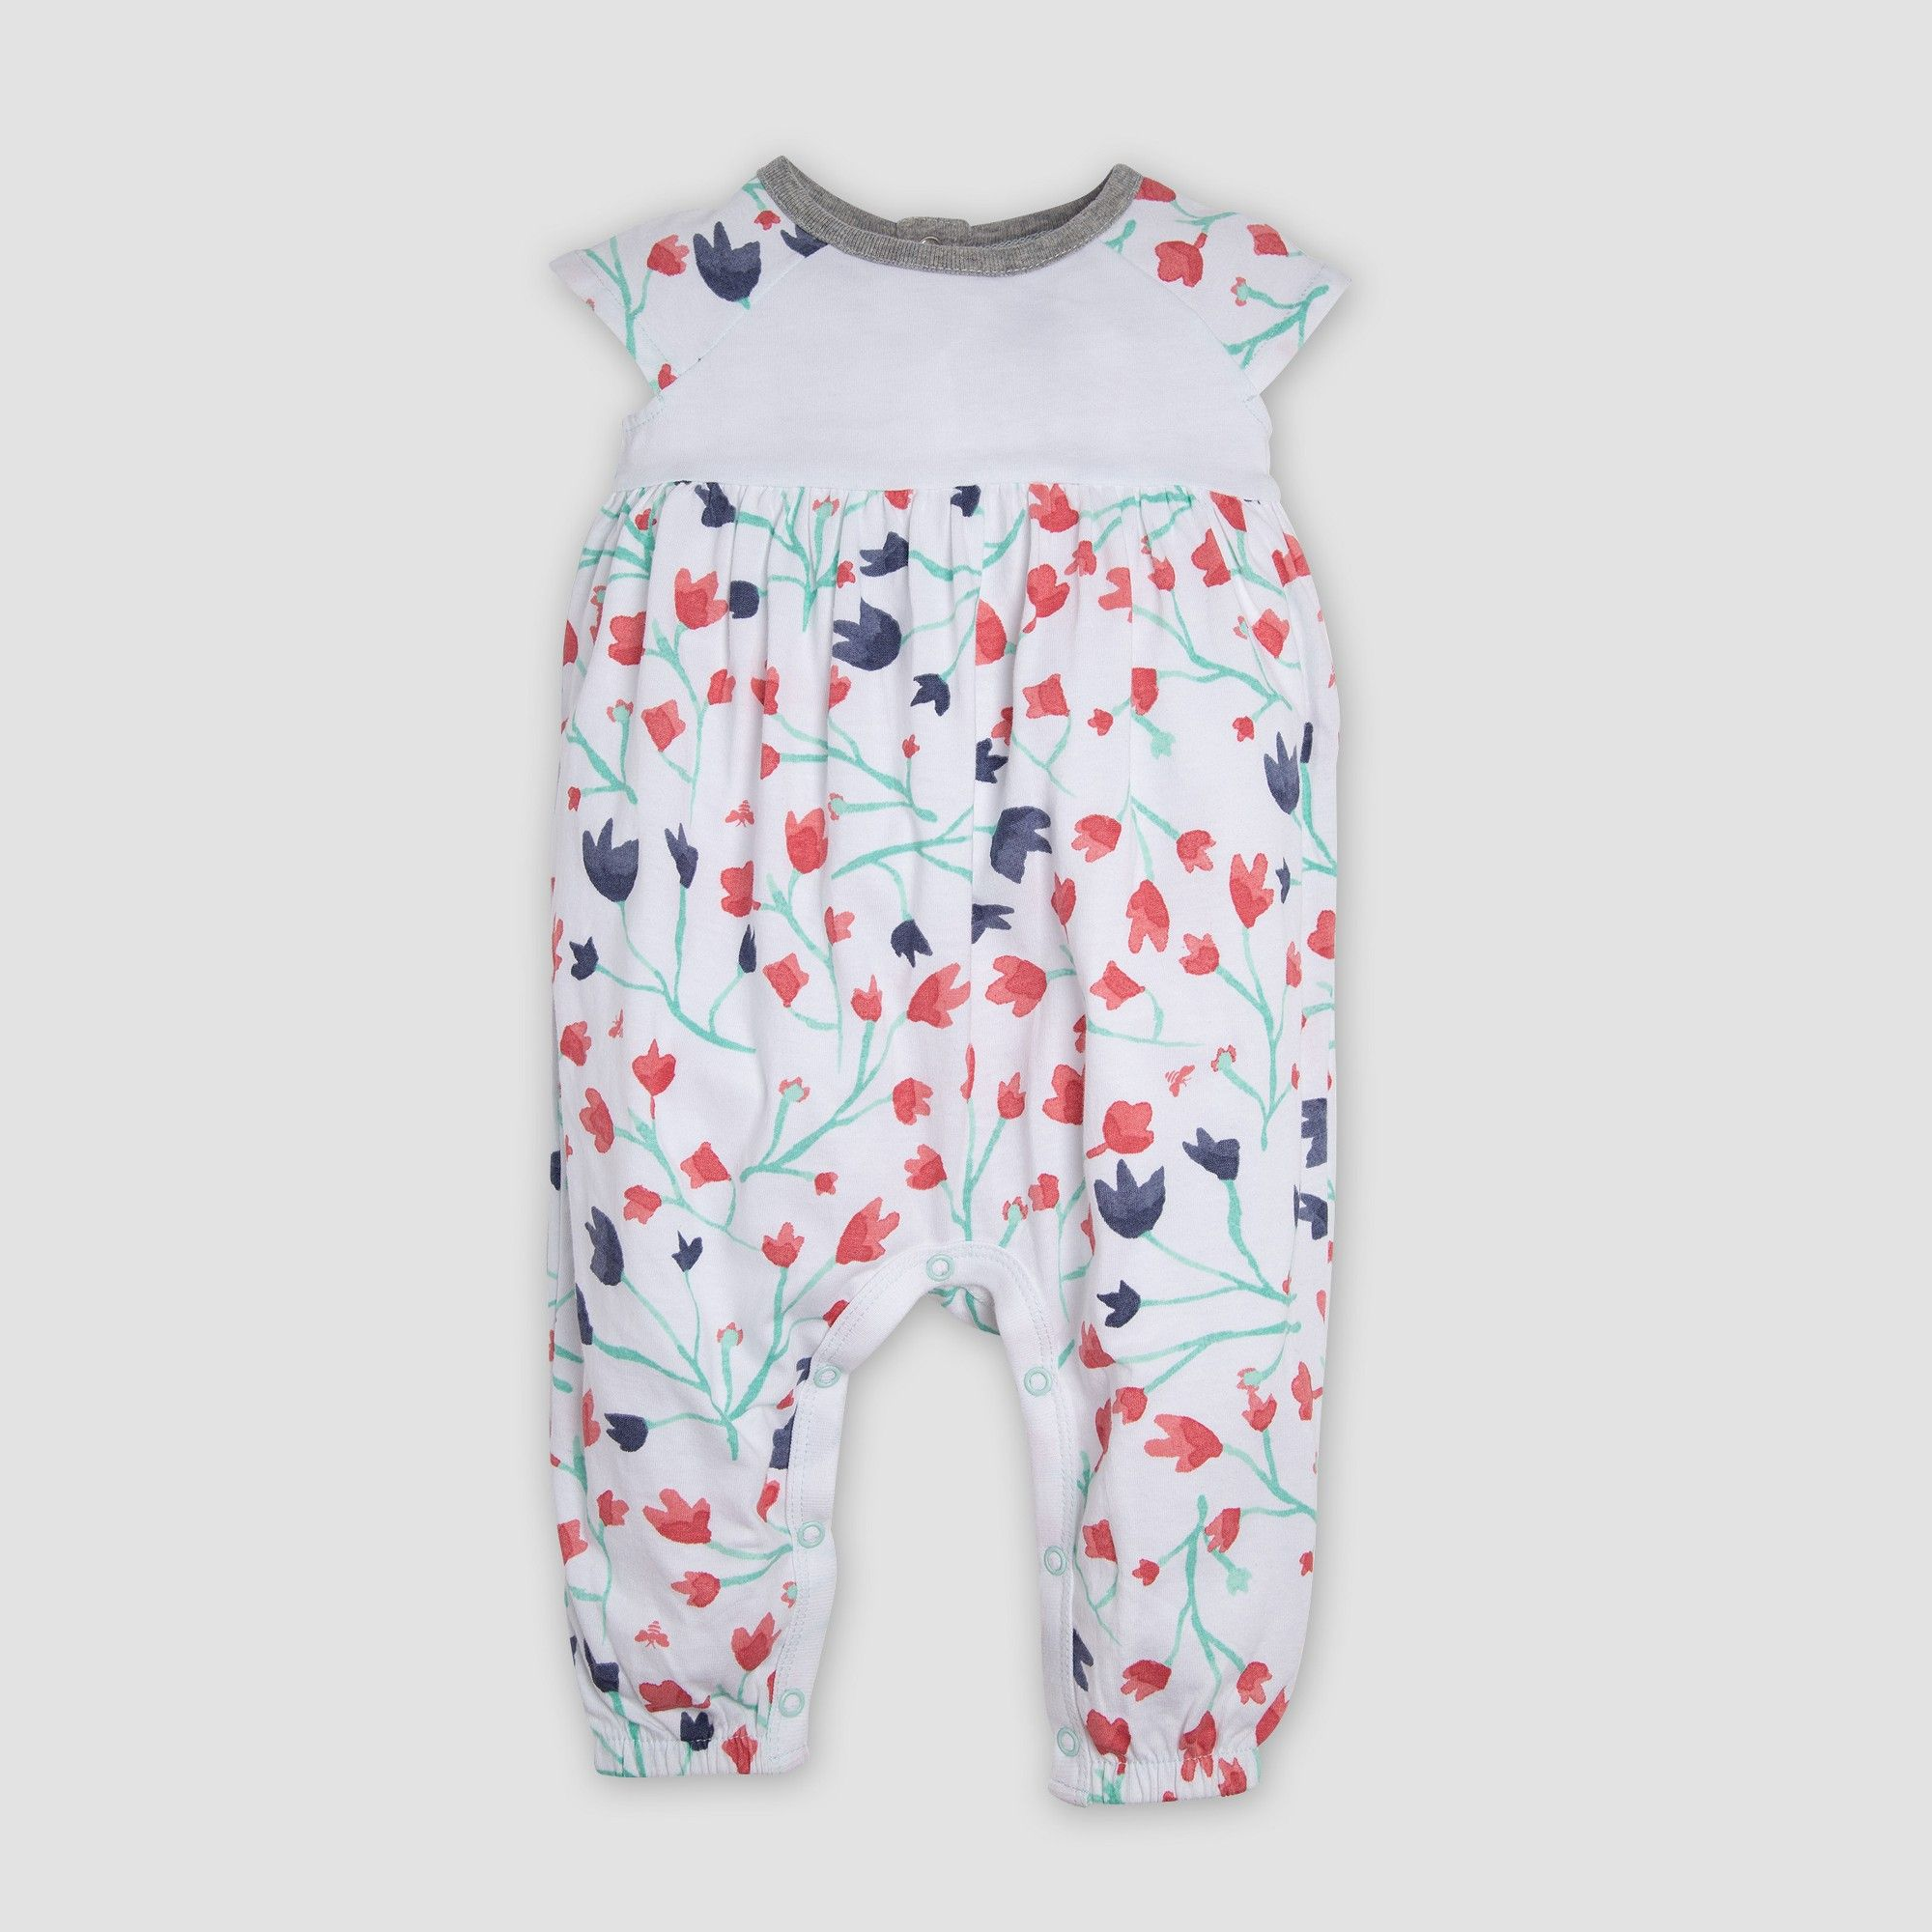 3a7fe08e0bc Burt s Bees Baby Baby Girls  Floral Organic Cotton Coveralls - Pink Newborn